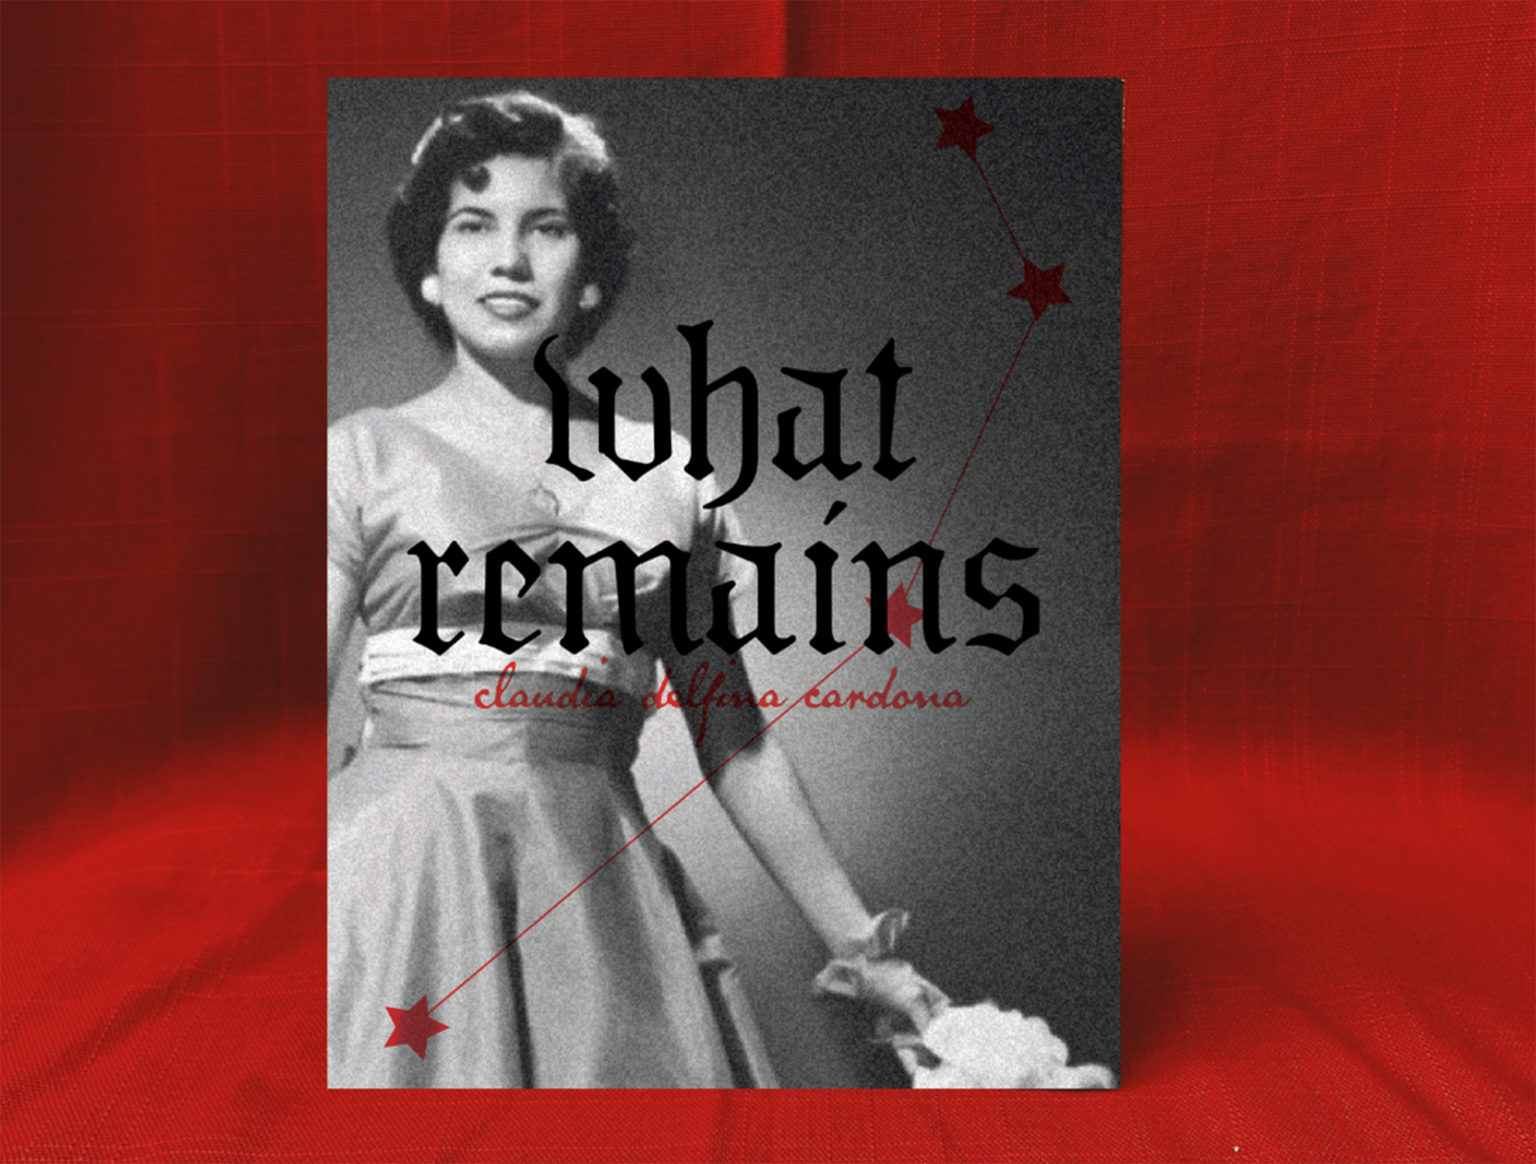 What Remains, by Claudia Delfina Cardona. Host Publications; $10.